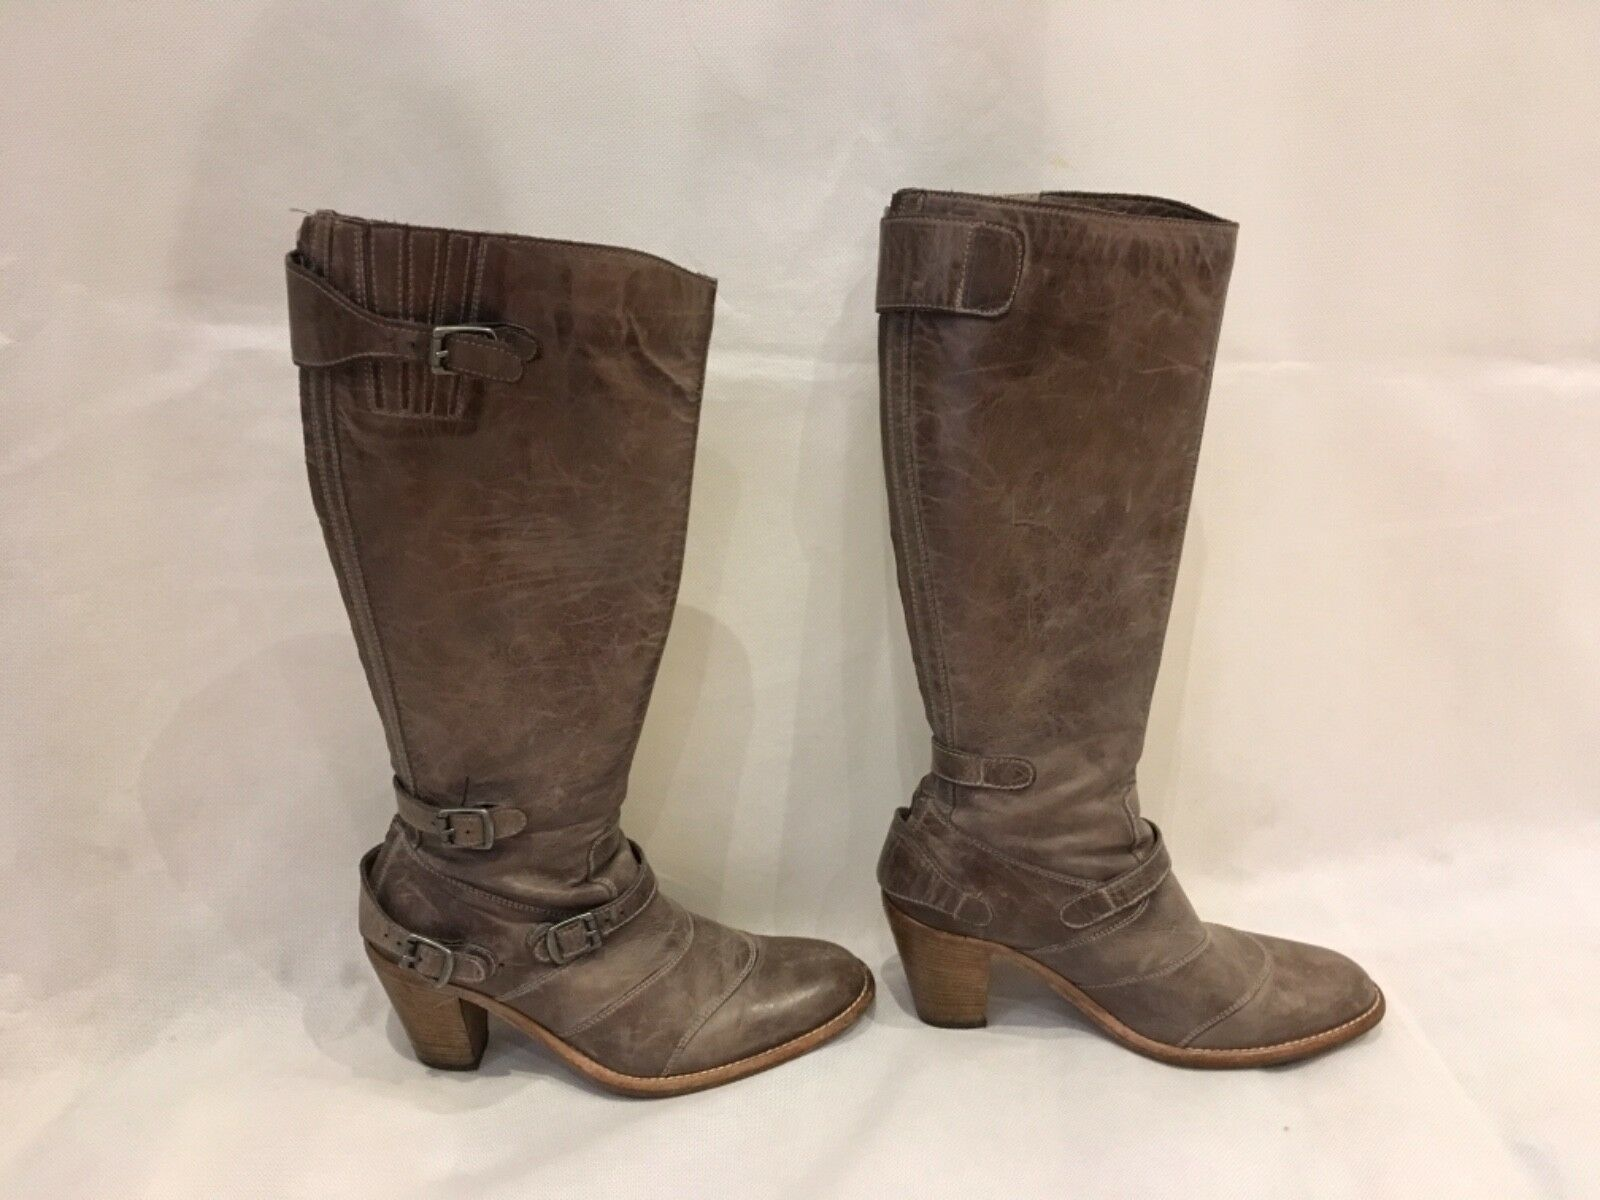 BELSTAFF TRIALMASTER HH IT38/UK5/US7 LIGHT BROWN BOOTS SIZE IT38/UK5/US7 HH 864dc9